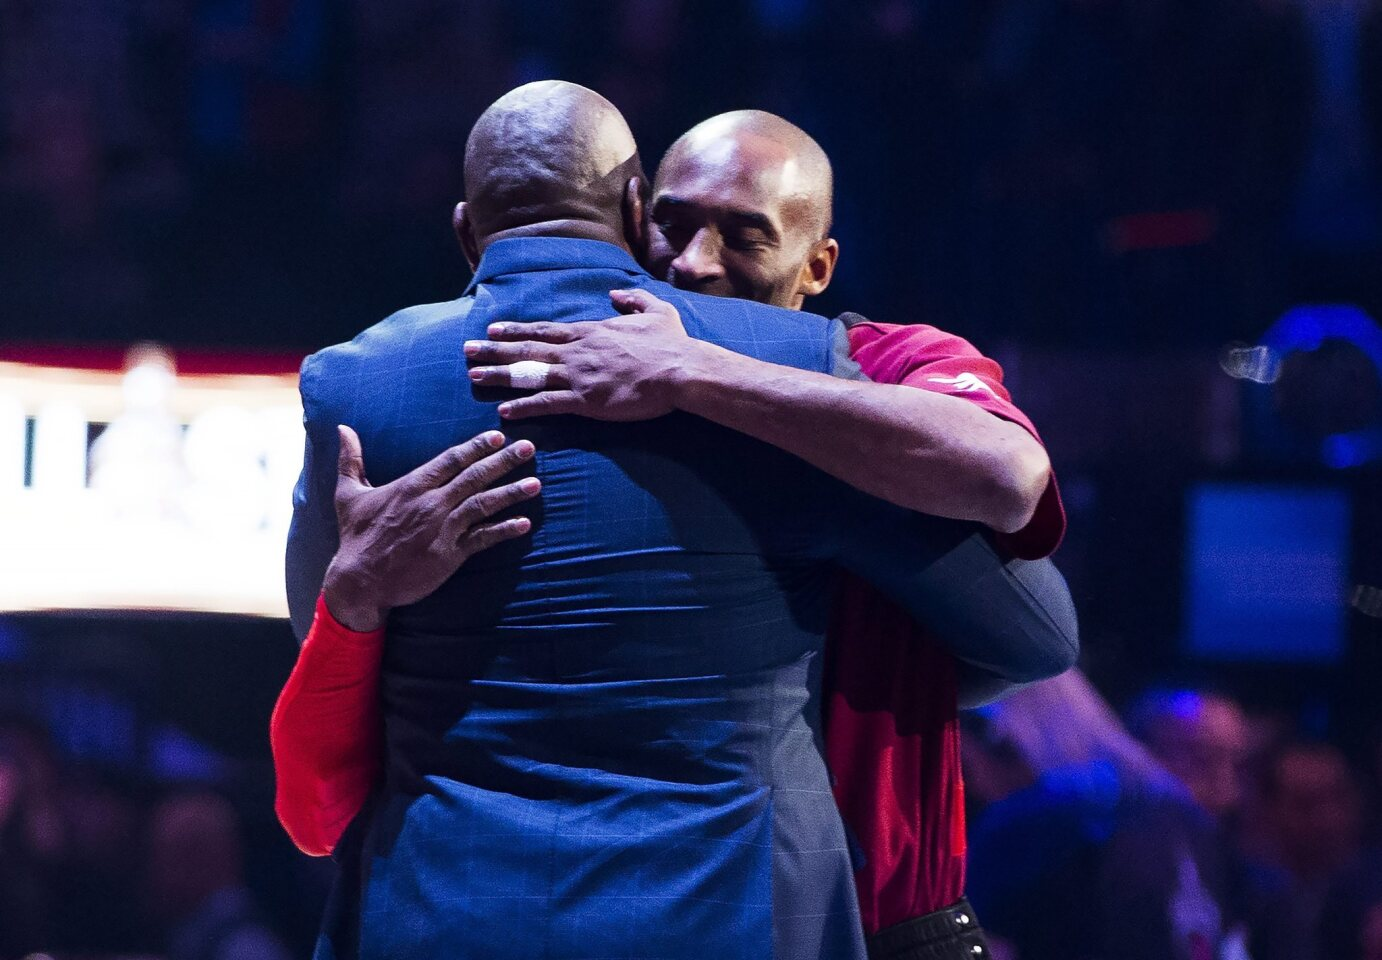 Western Conference's Kobe Bryant, of the Los Angeles Lakers, right, hugs Magic Johnson, left, as he is introduced before the first half of the NBA all-star basketball game, Sunday, Feb. 14, 2016 in Toronto. (Mark Blinch/The Canadian Press via AP) MANDATORY CREDIT